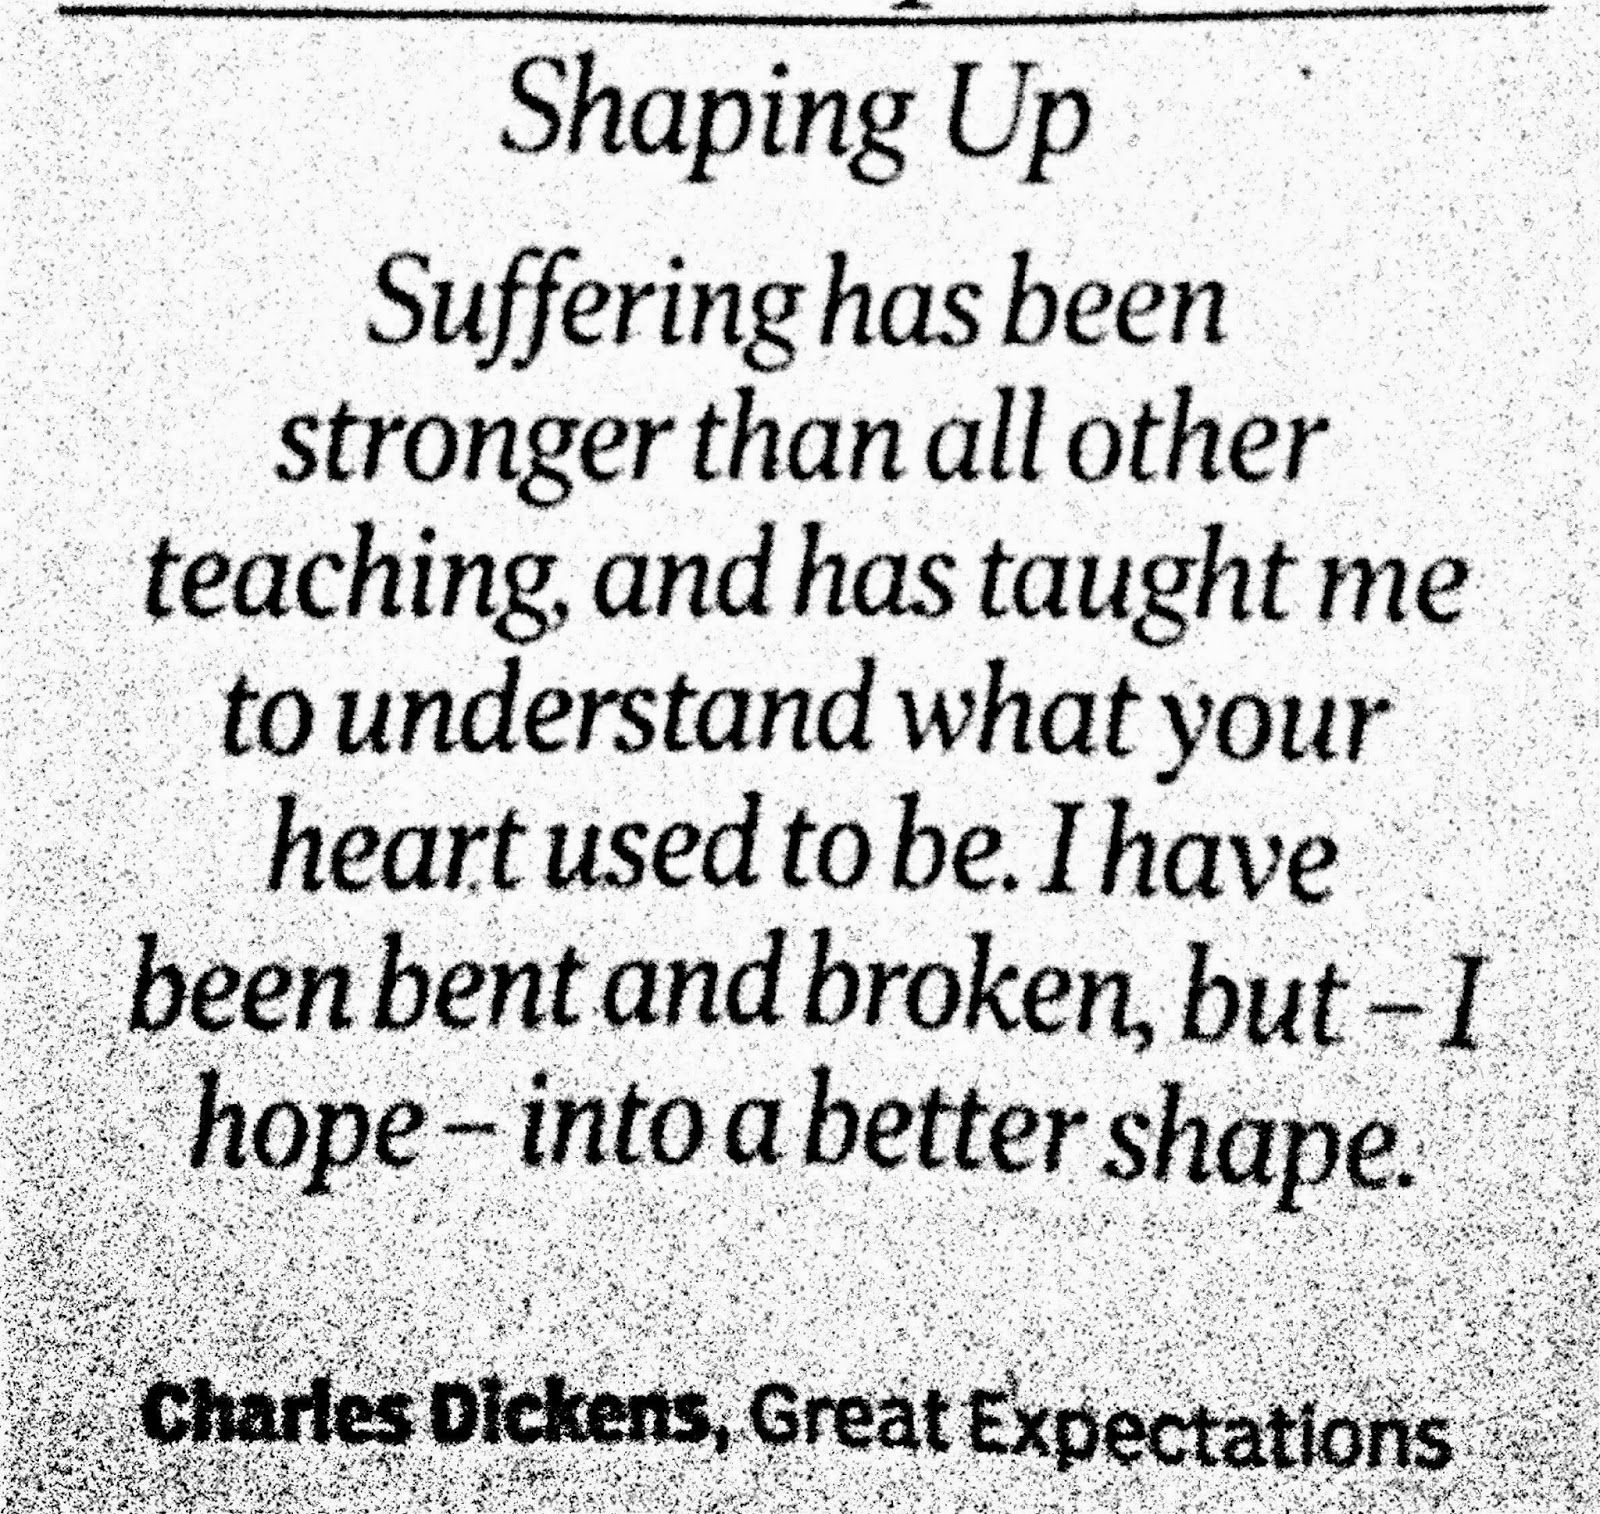 What Life Has Taught Me Quotes Thoughtsnlife Shaping Up Suffering Has Been Stronger Than